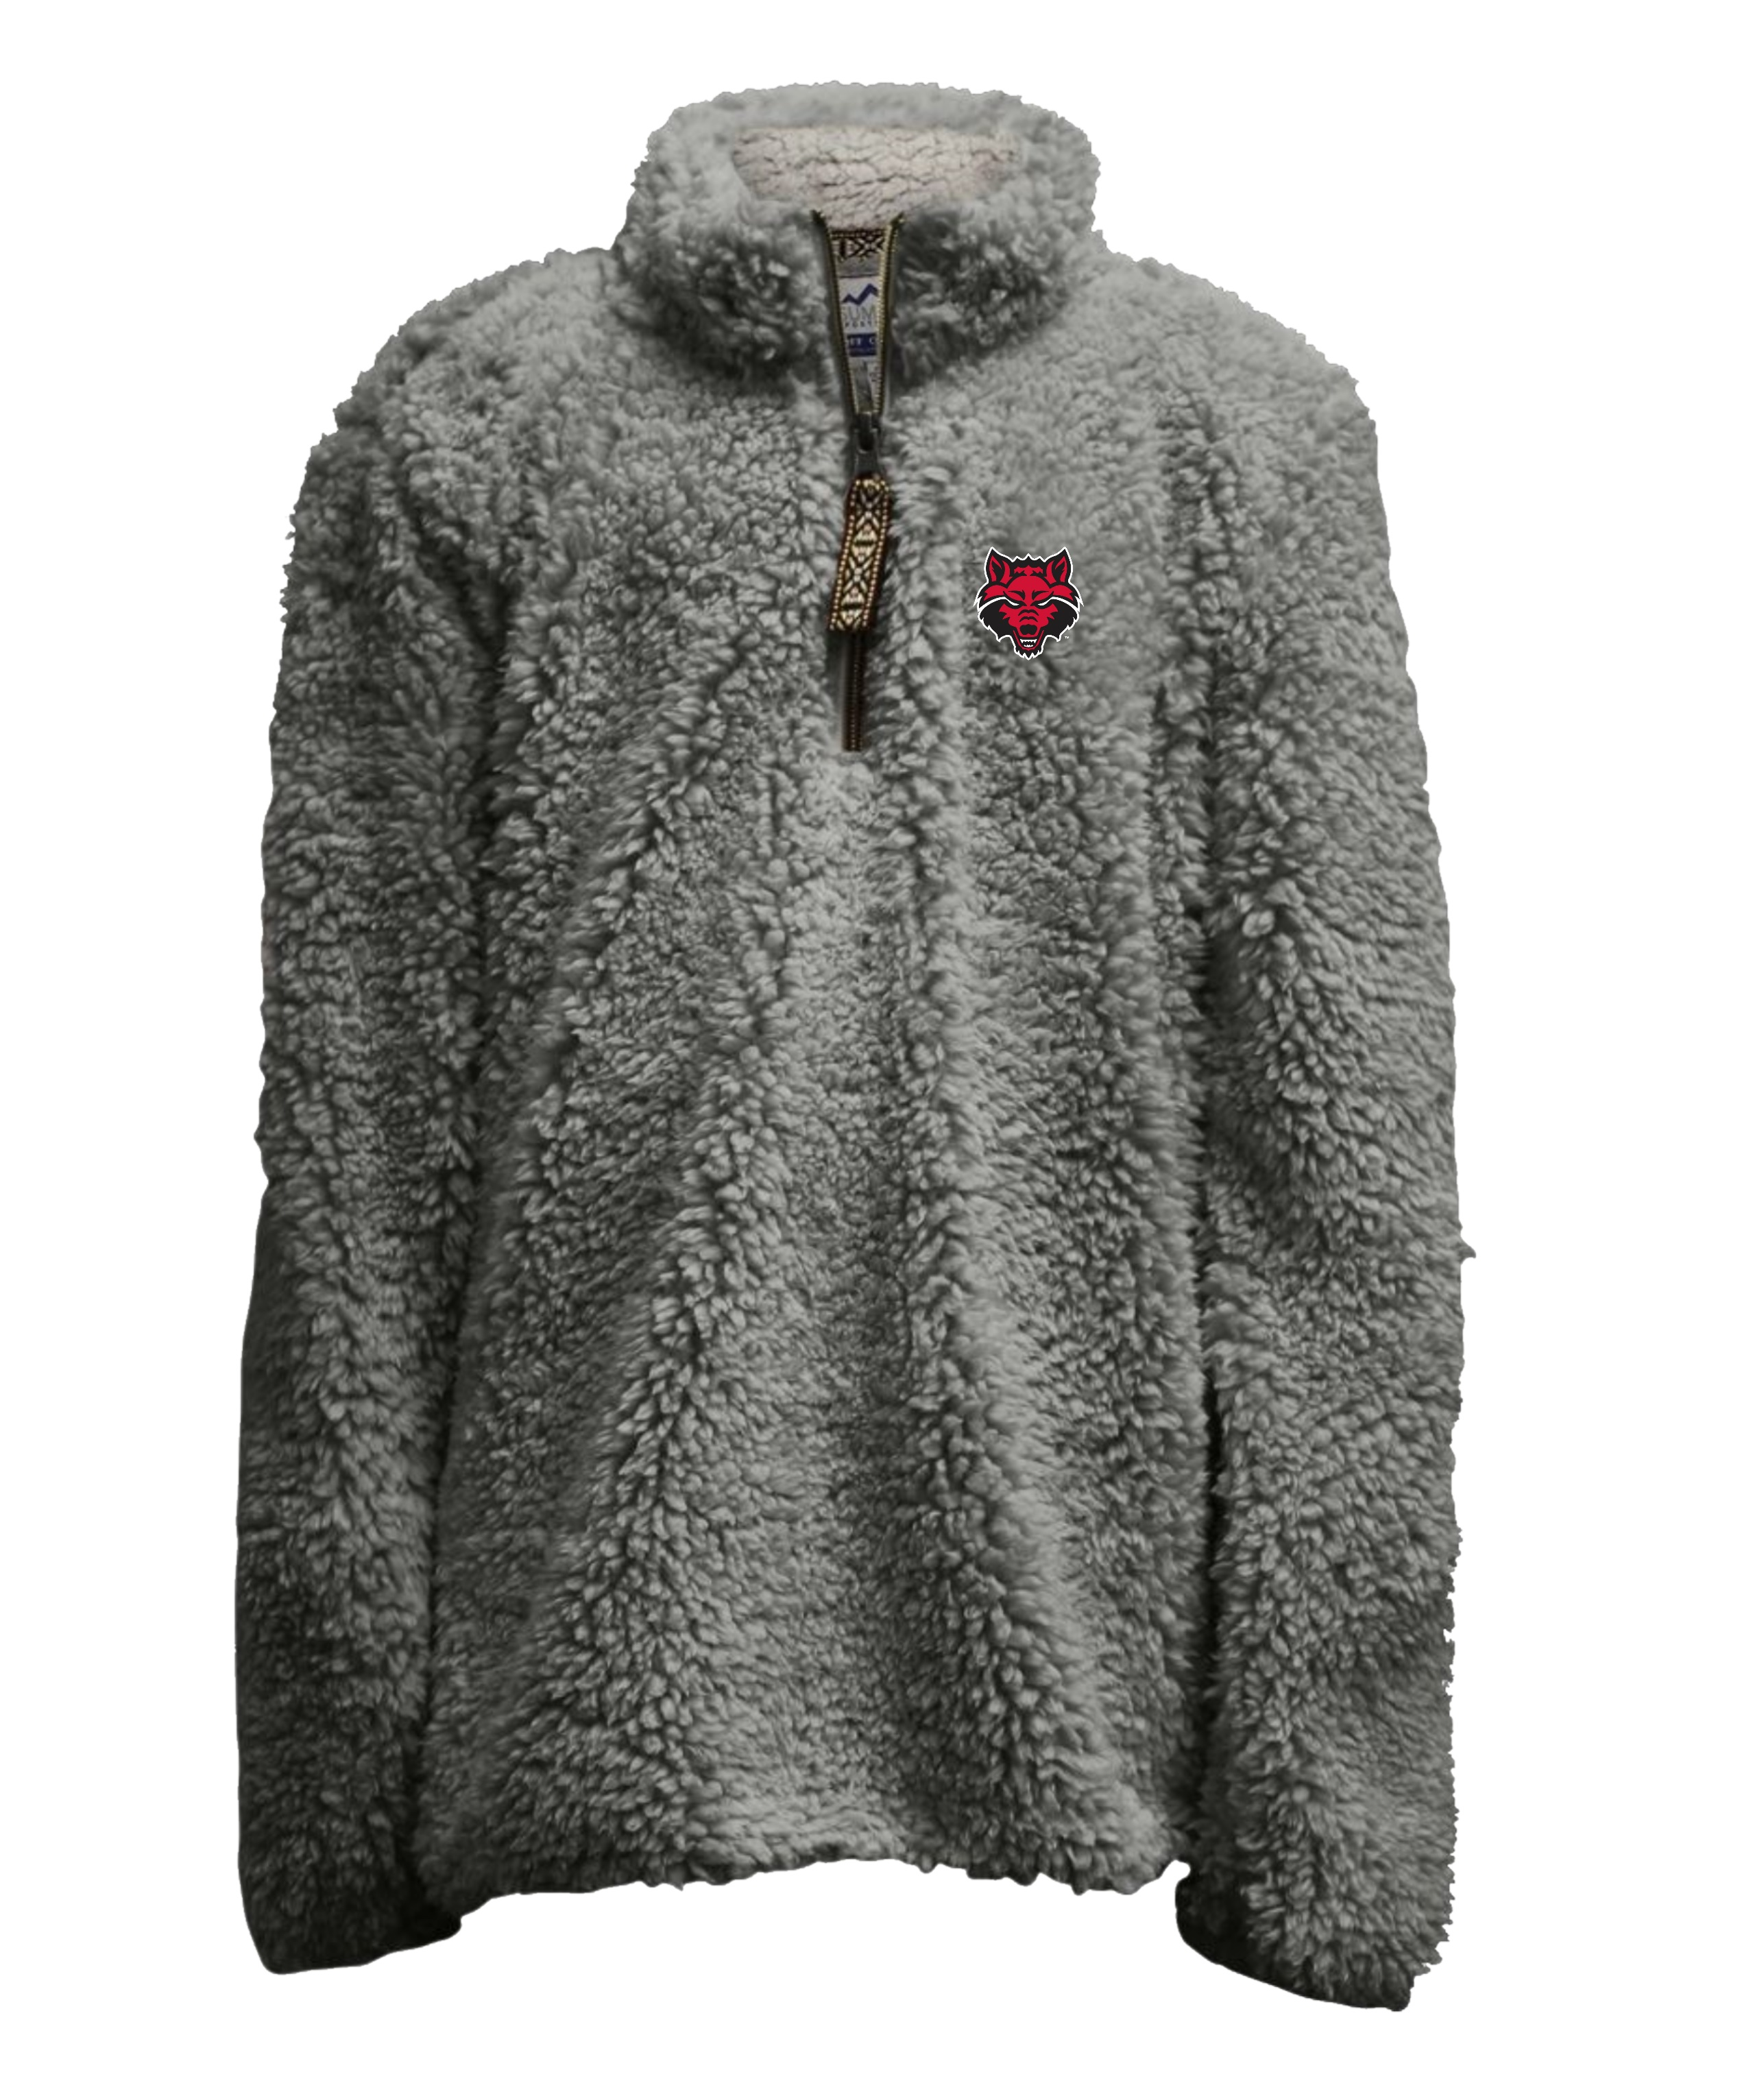 Arkansas State Youth Heathered Sherpa 1/4 Zip Pull Over